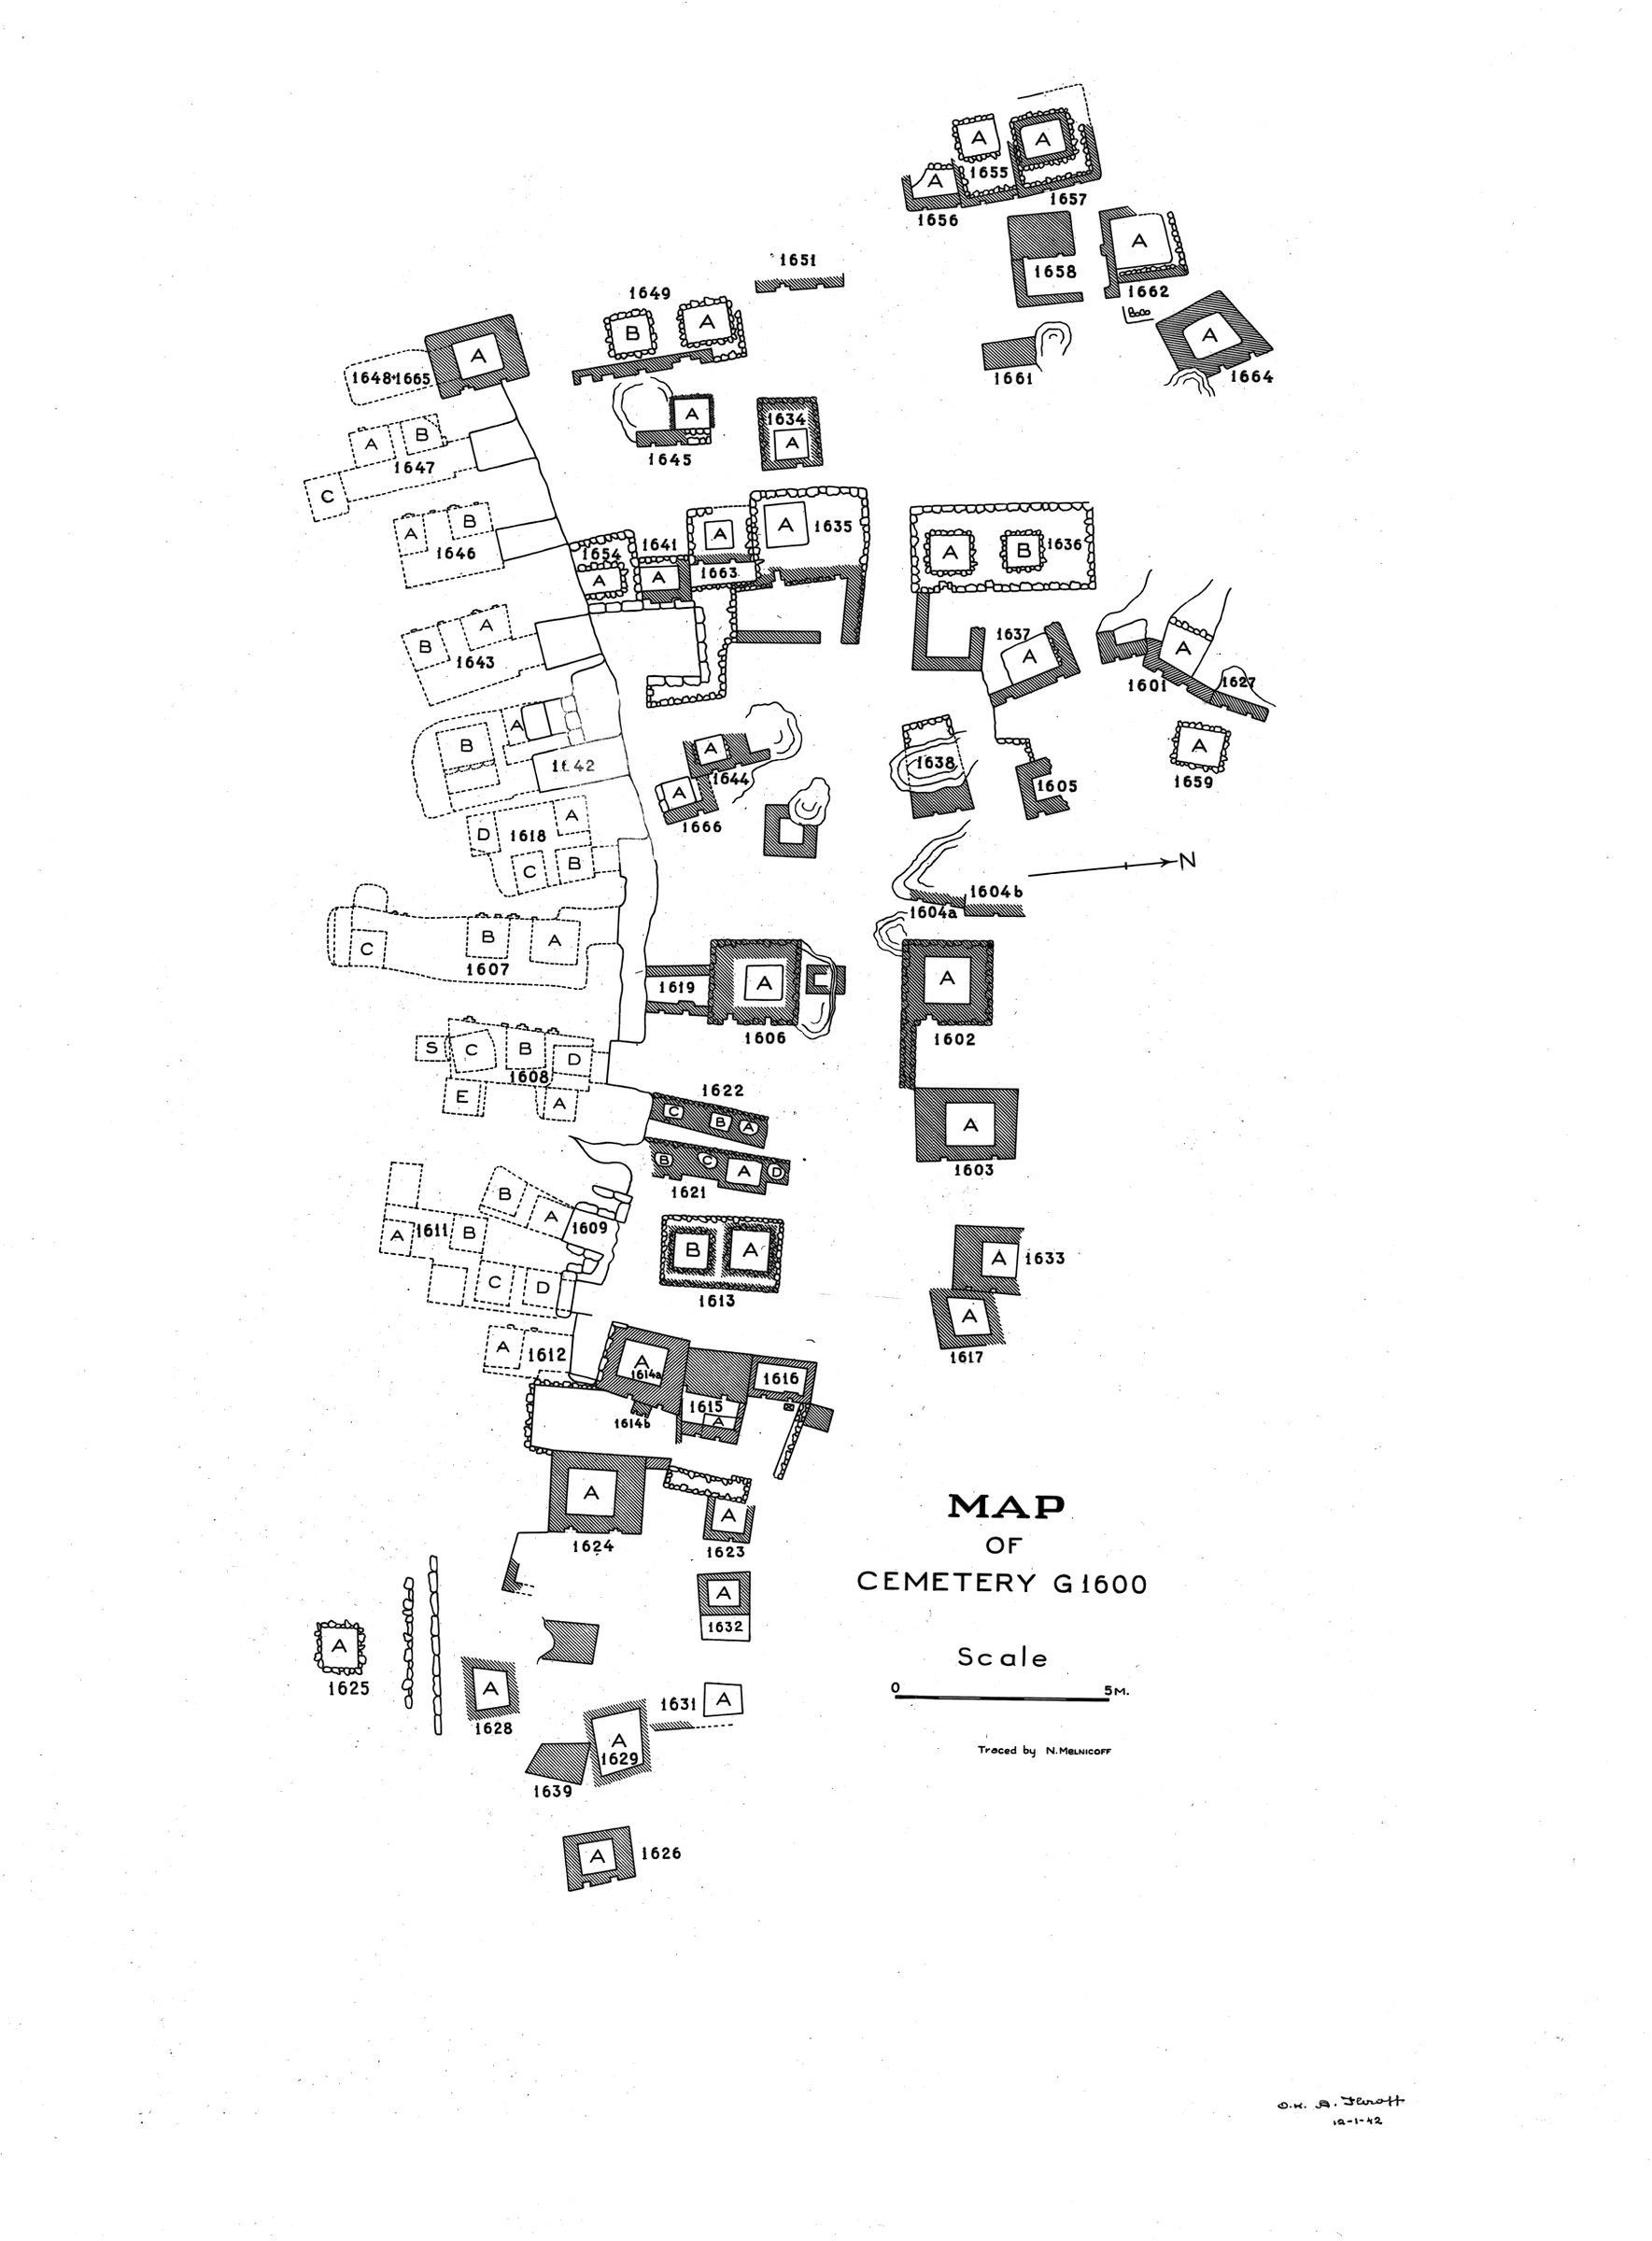 Maps and plans: Plan of cemetery G 1600 (north), G 1601 to G 1666